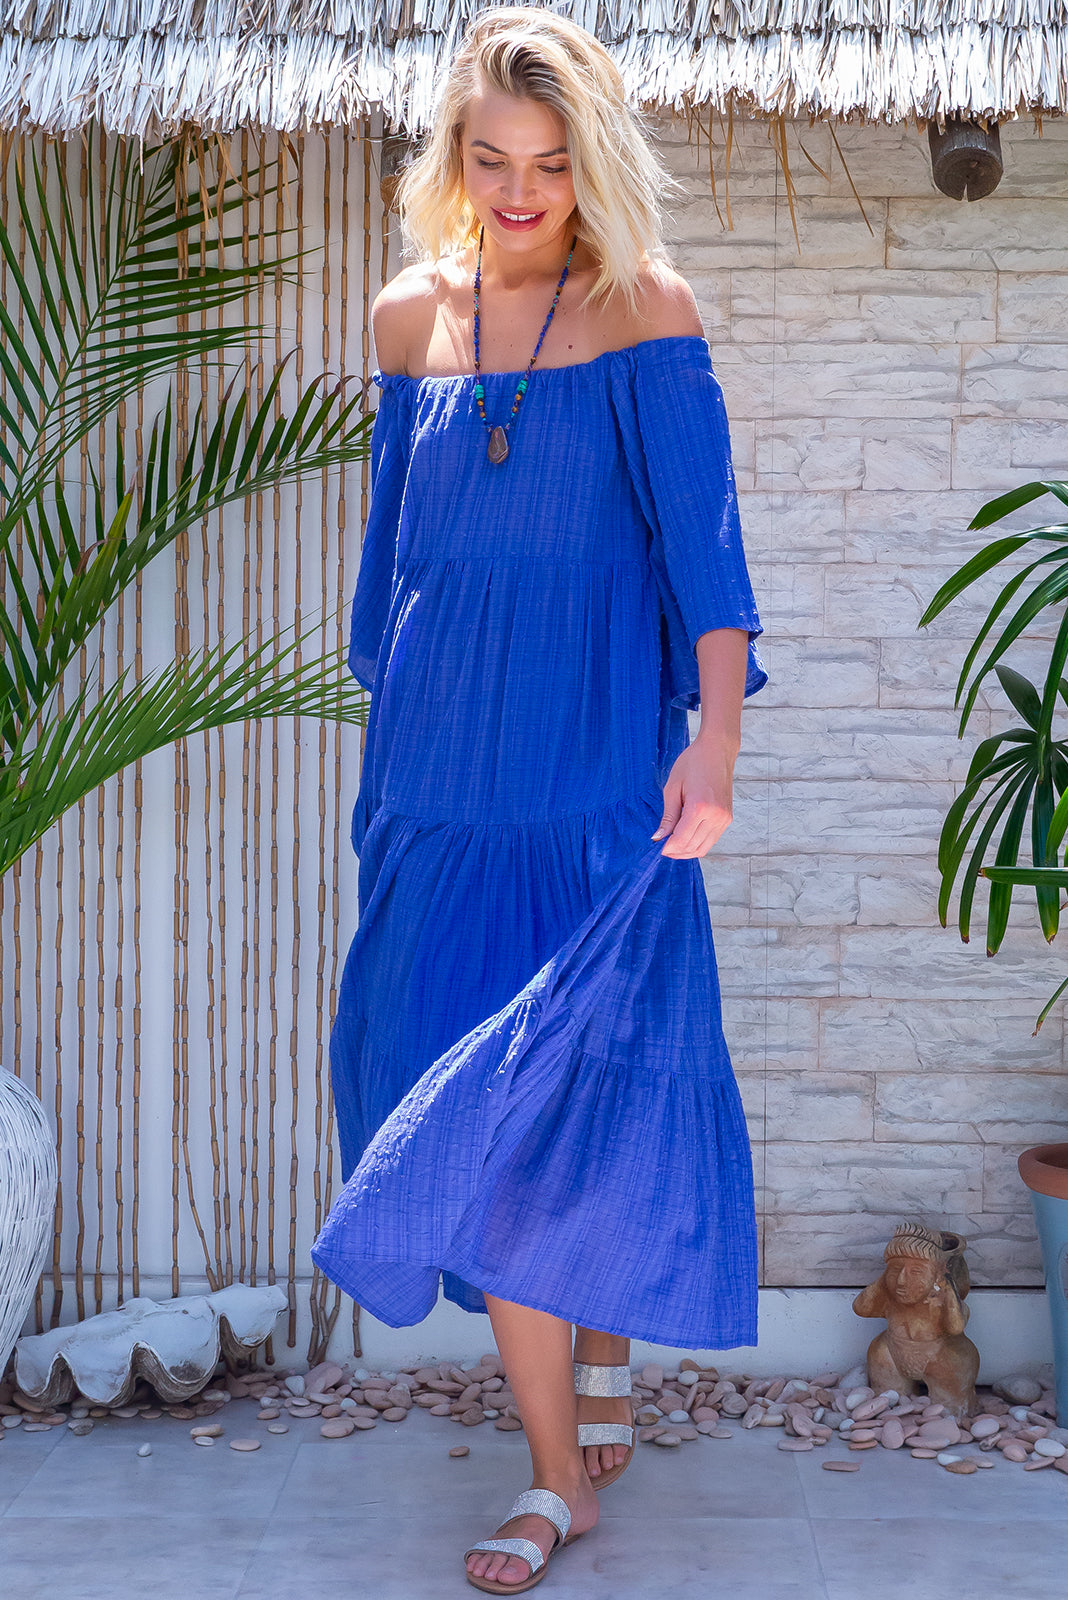 The Lulu Liberty Blue Dobby Swing Maxi Dress can be worn 2 ways, off the shoulder style or on top of shoulders in scooped neck style, this beauty features fabric belt included and 100% textured cotton in blue with spot texture and faint plaid print.